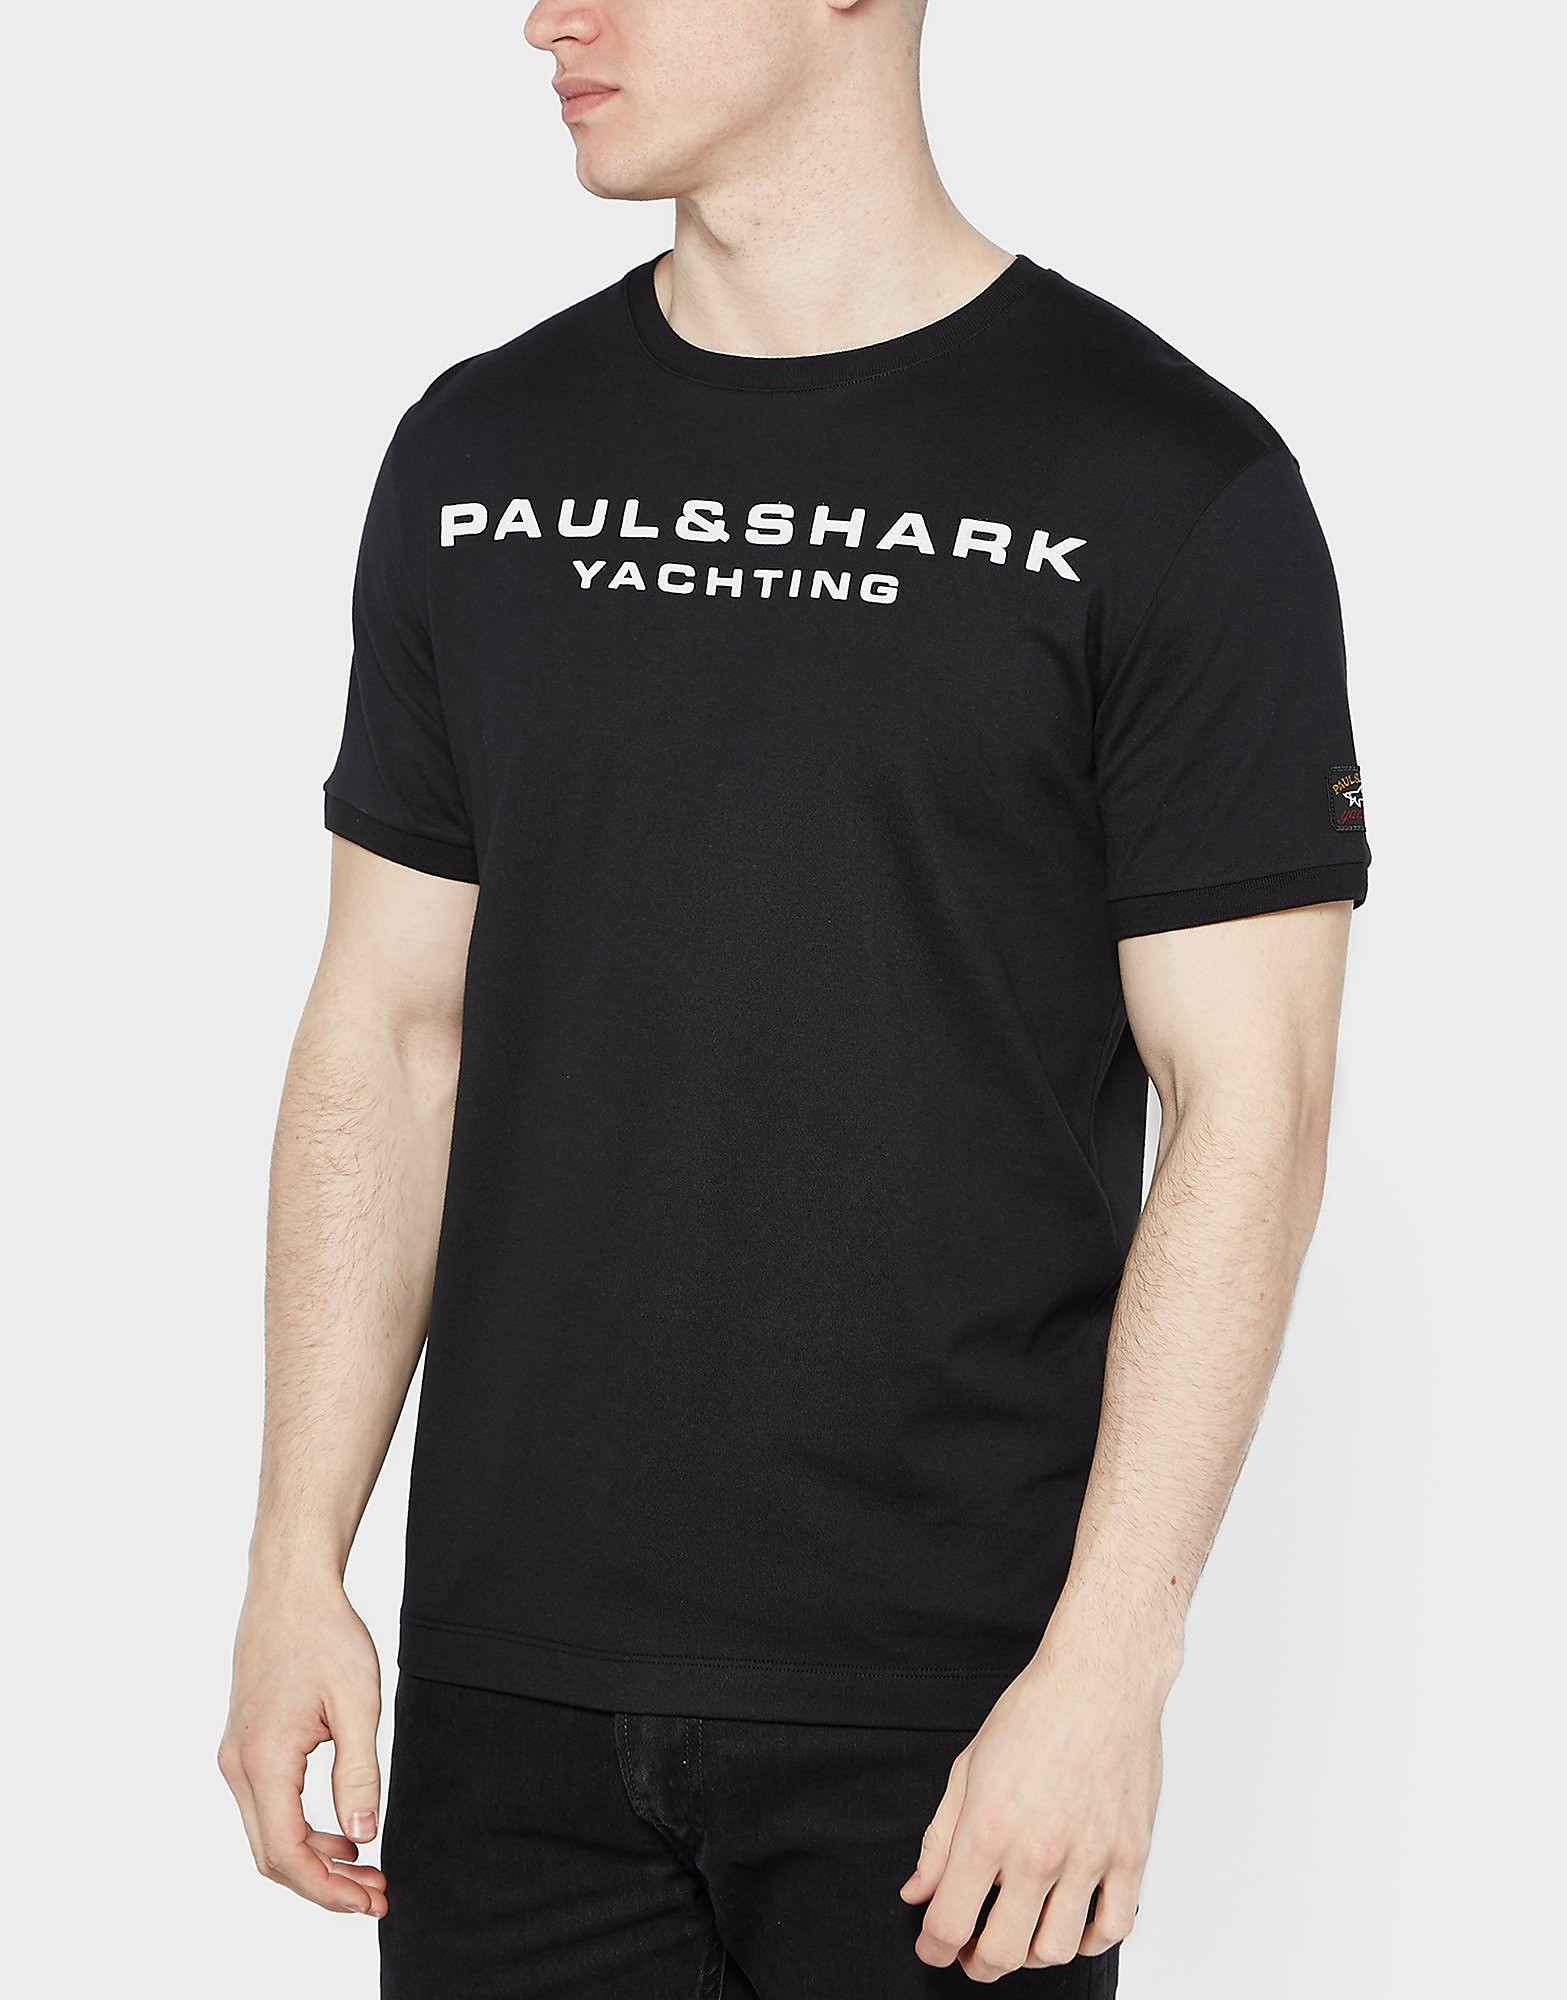 Paul and Shark Yachting Short Sleeve T-Shirt - Exclusive